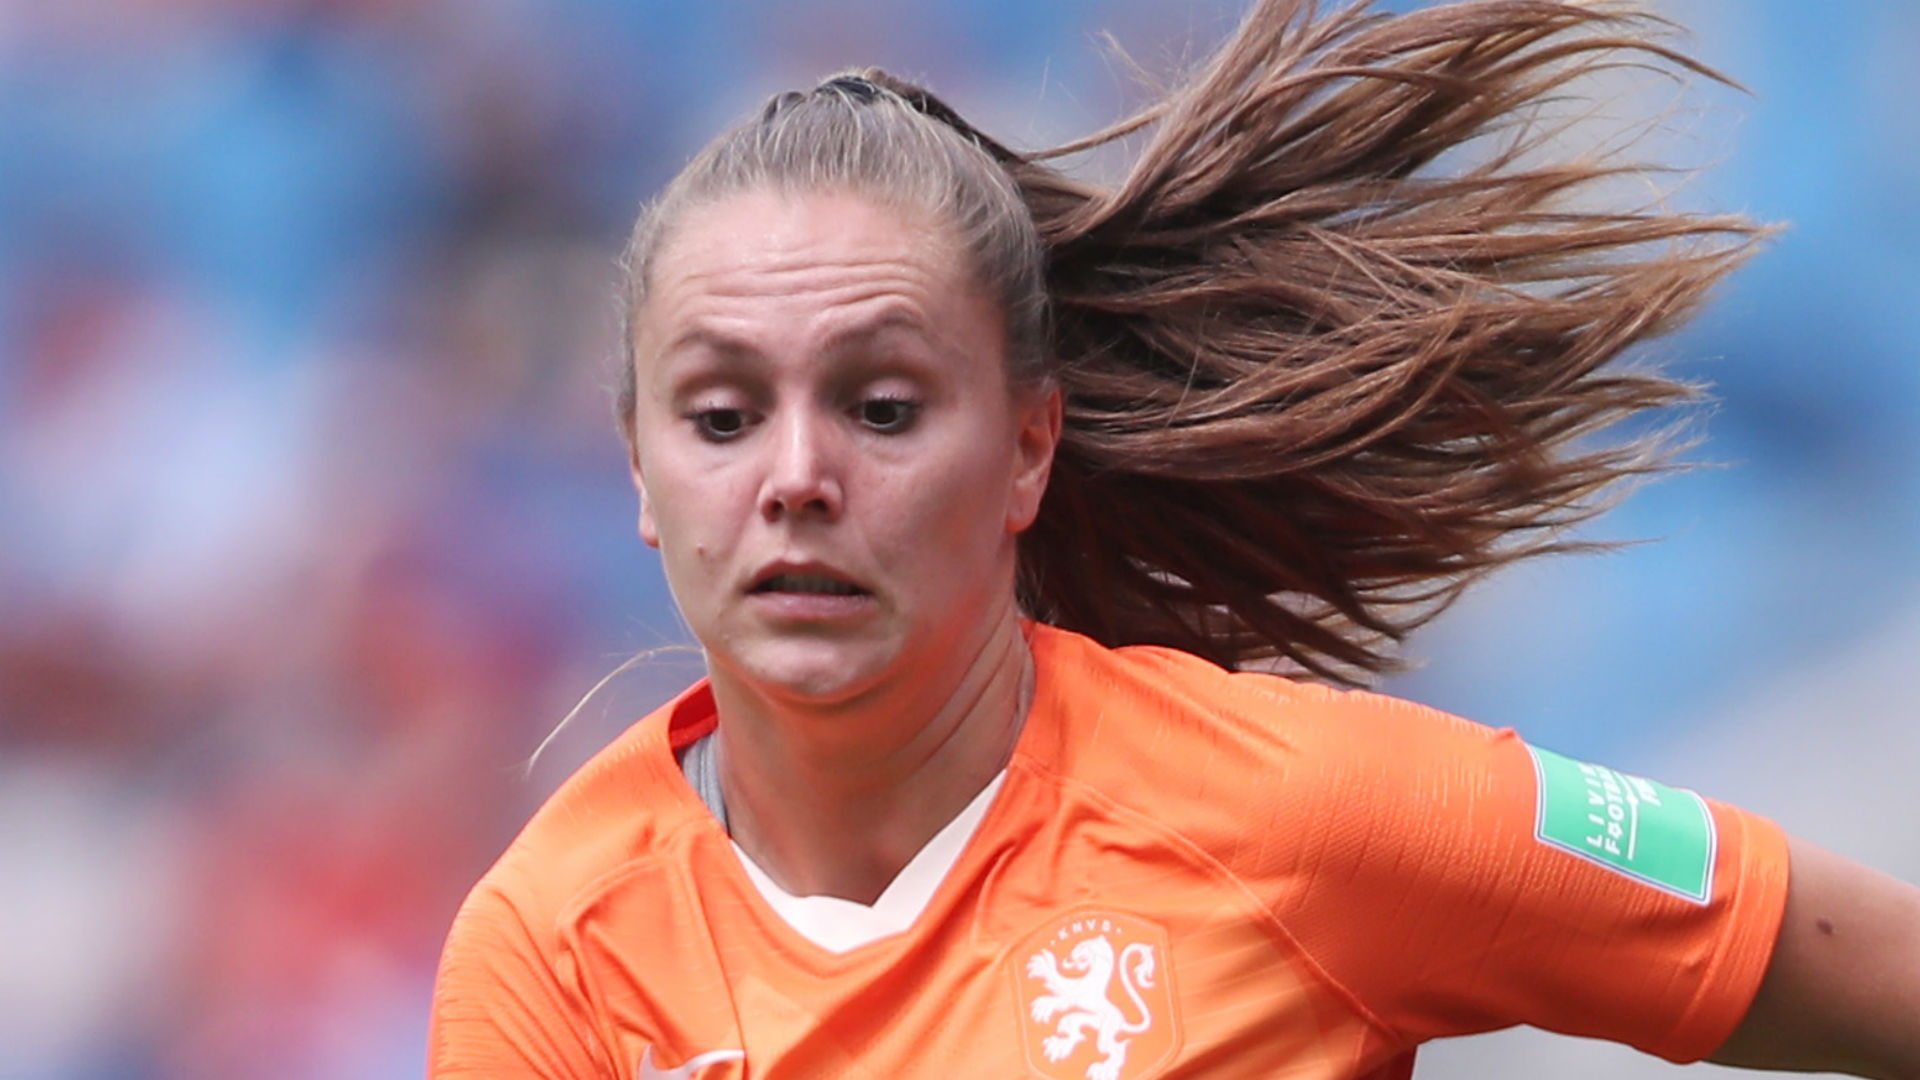 https://stadiumastro-kentico.s3.amazonaws.com/stadiumastro/media/perform-article/2019/jul/2/lieke-martens-cropped_1eoj8a44vnsdp1sjd1hrlc8f6s.jpg